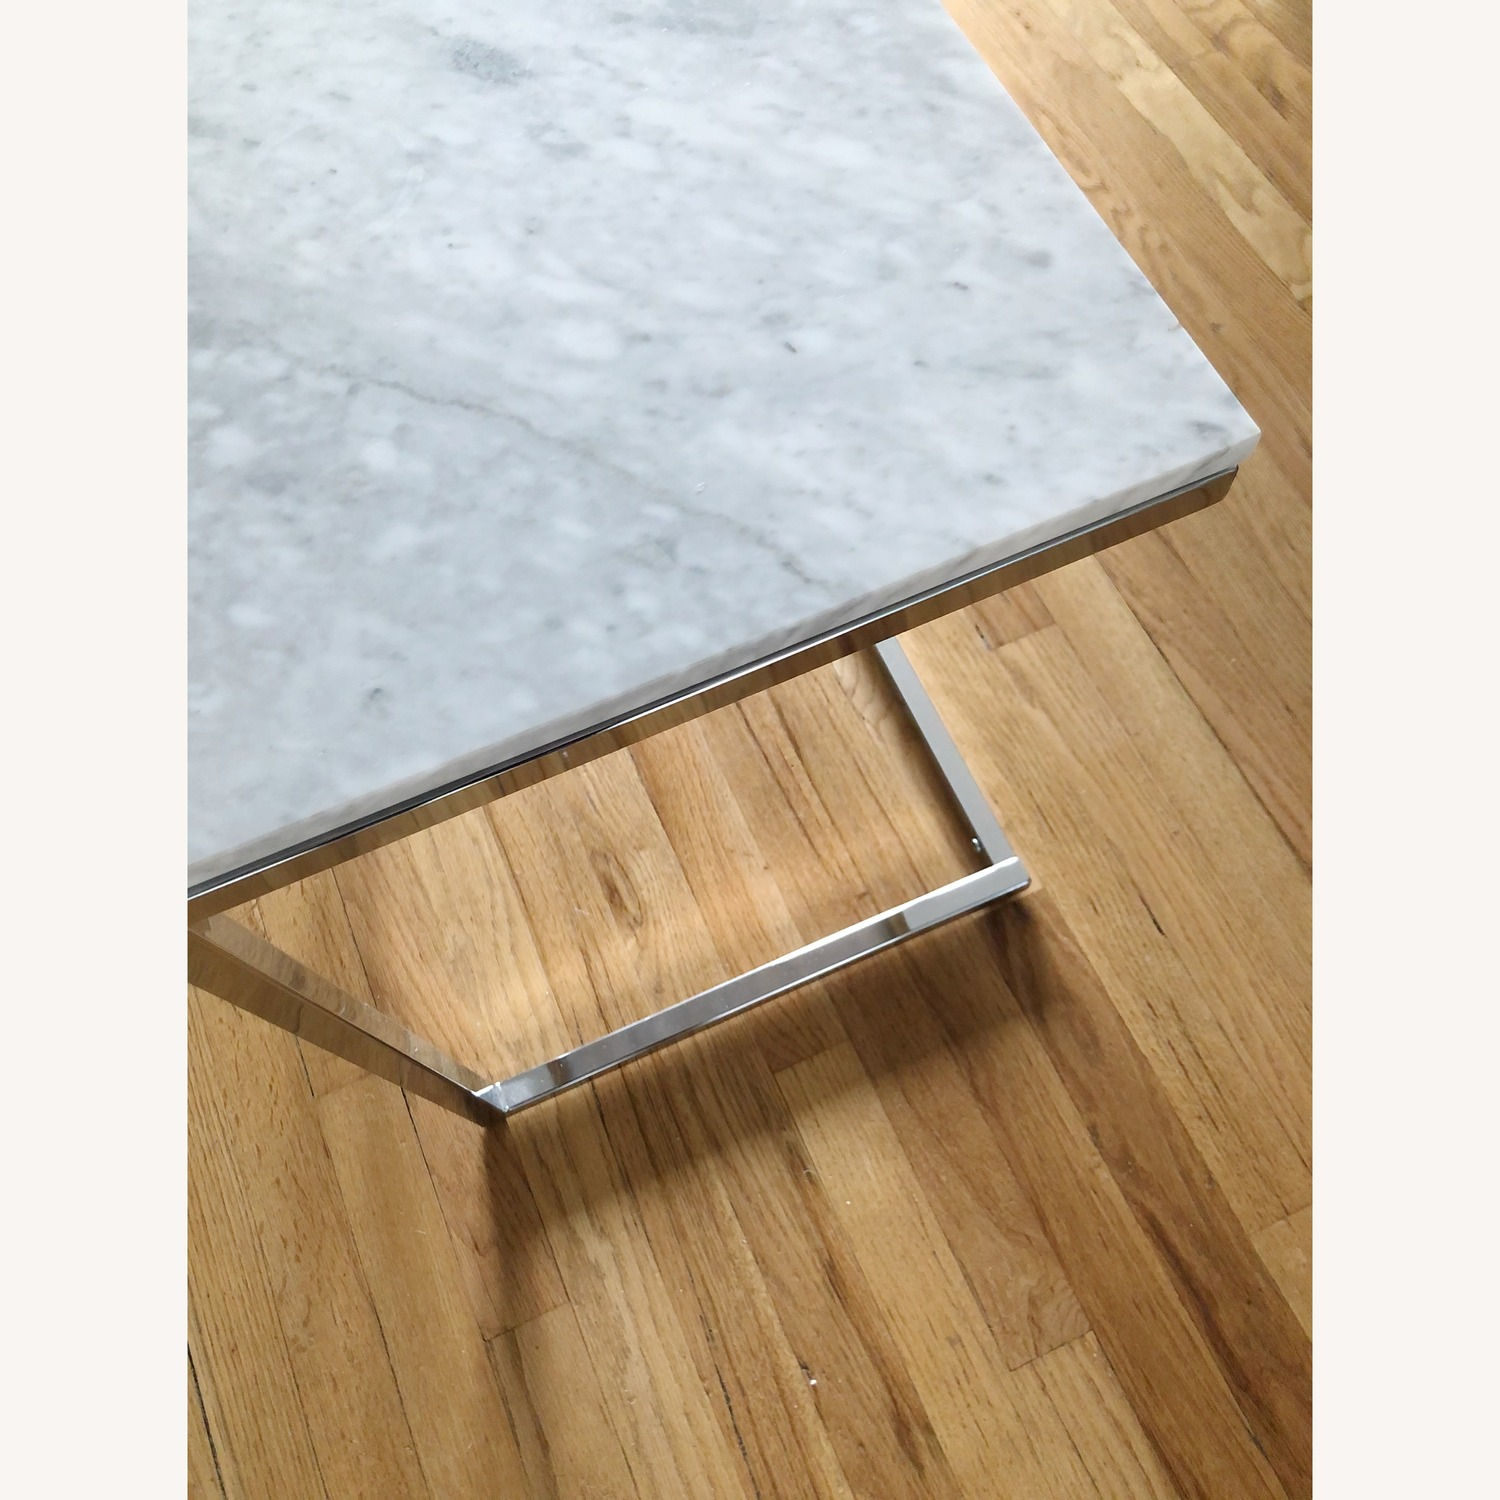 CB2 Smart Marble Top Side Table - image-3